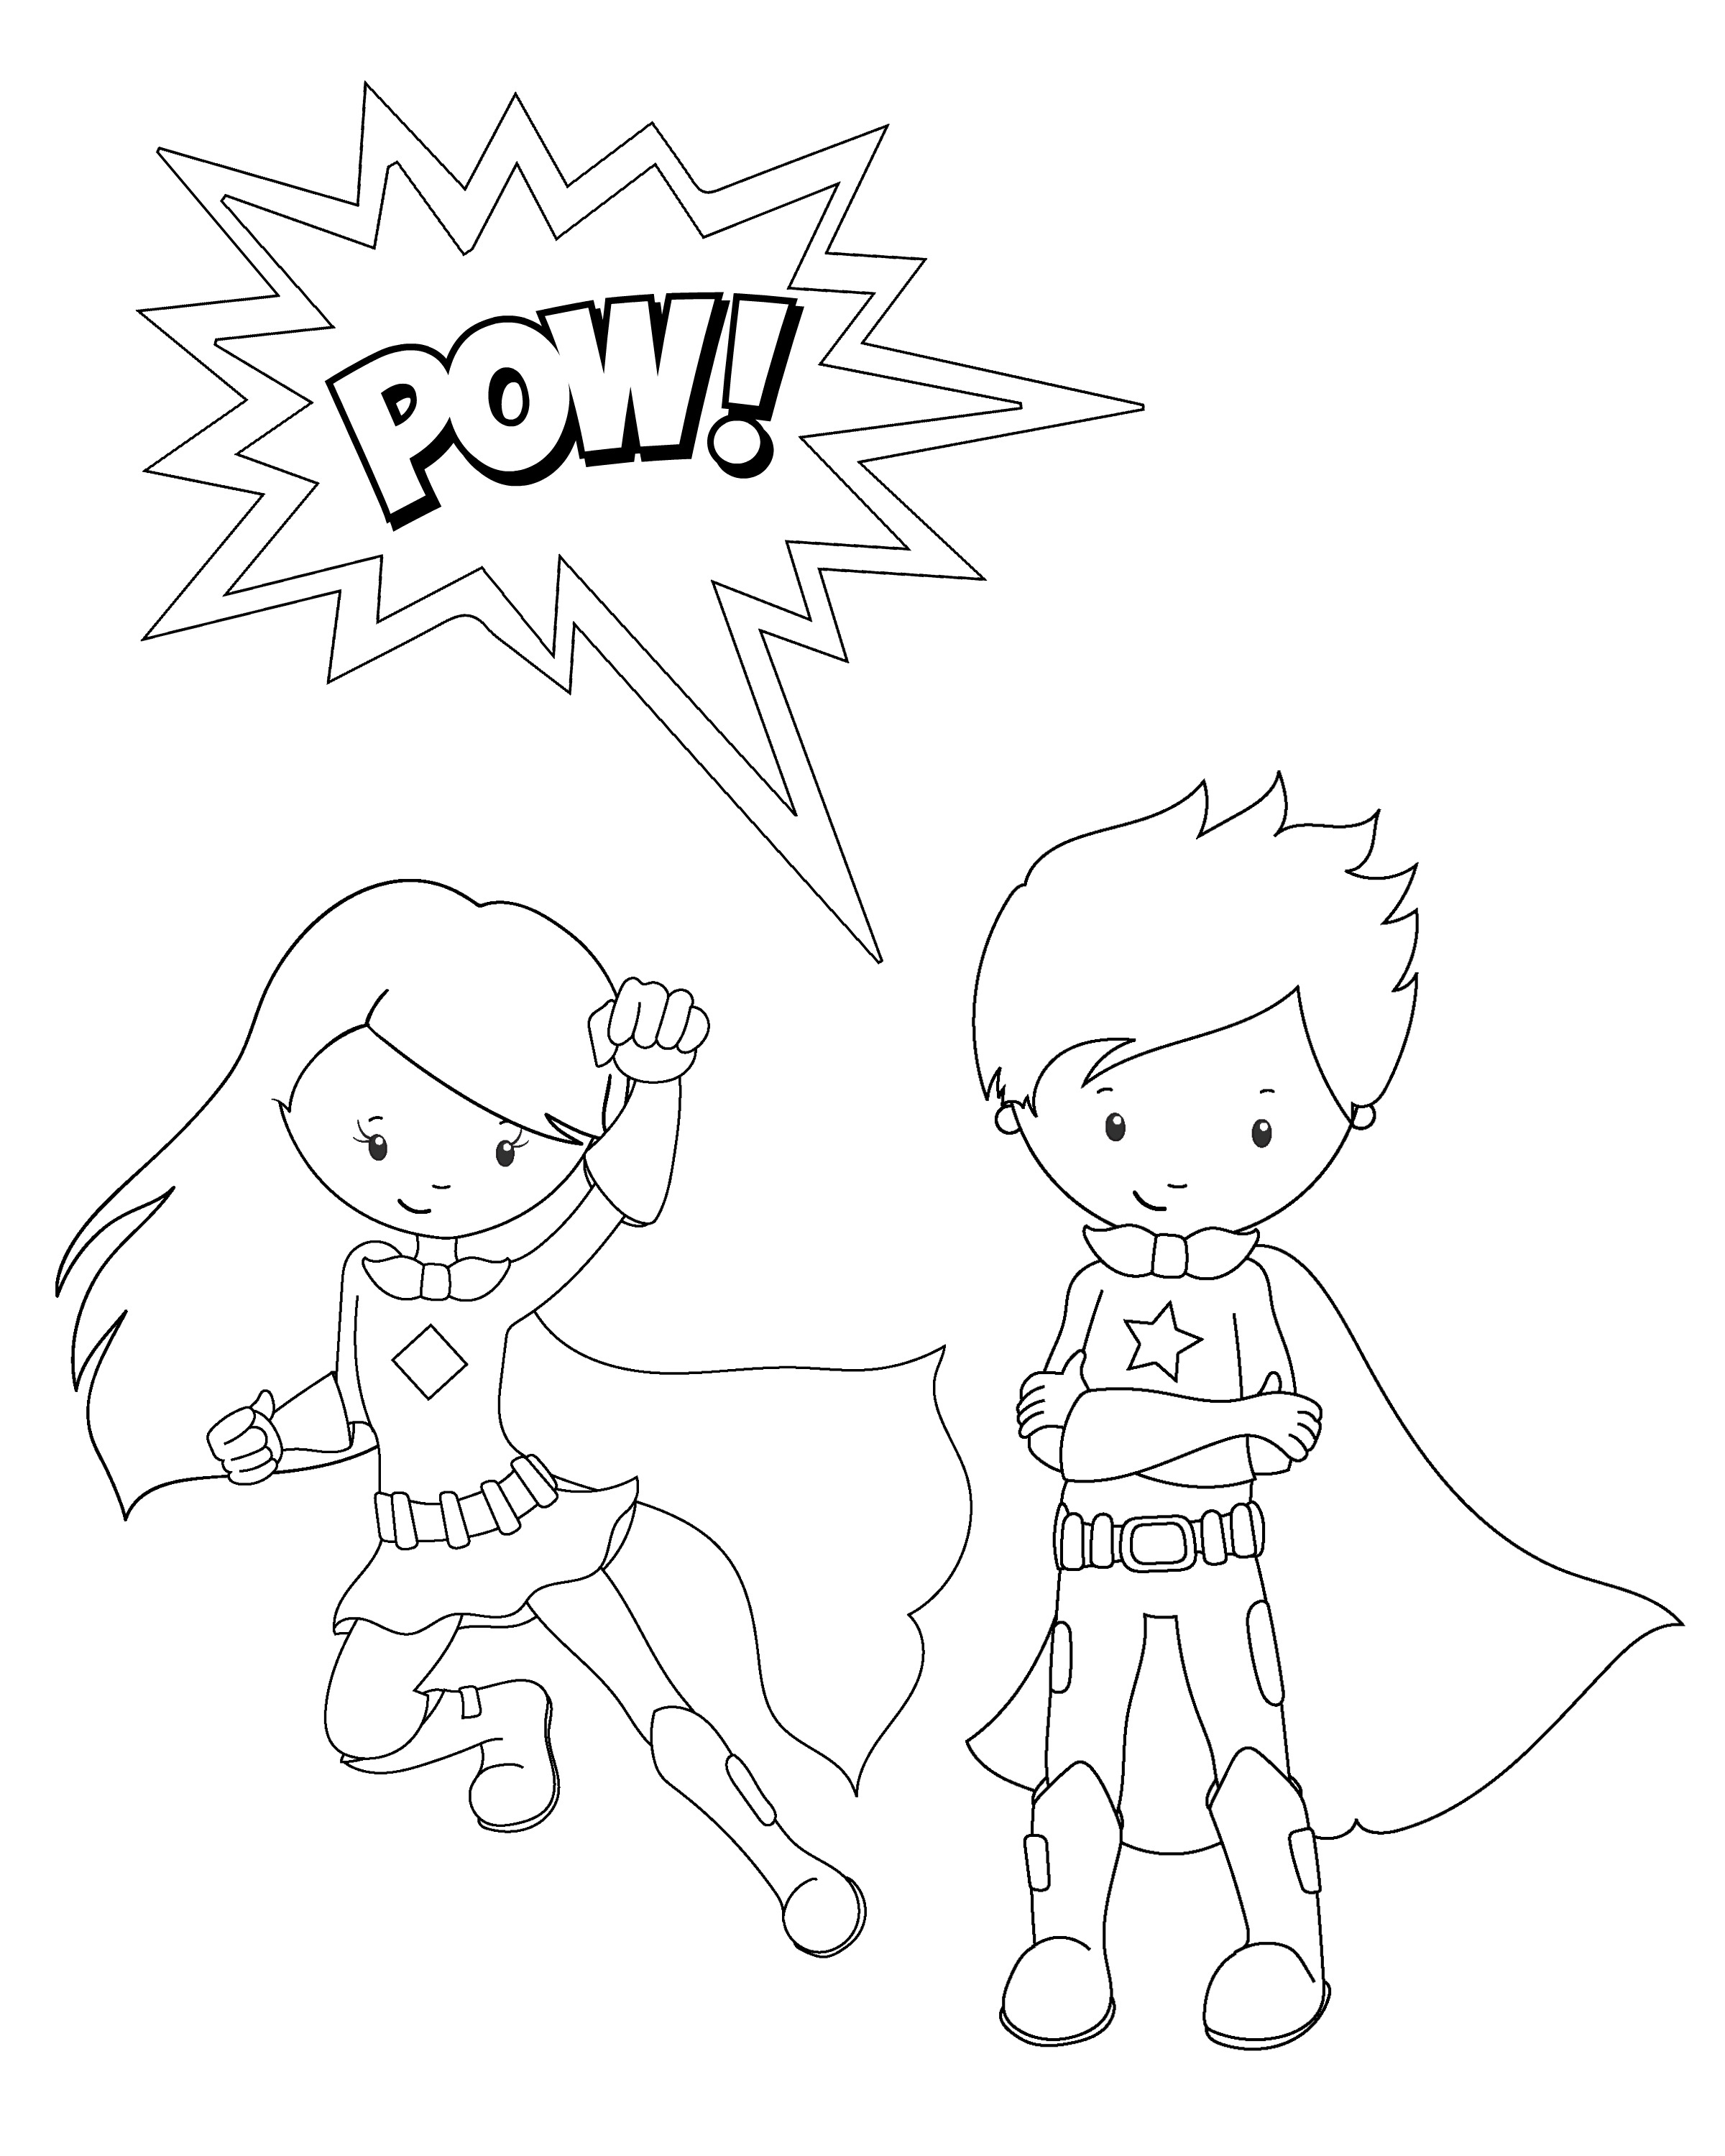 child superhero coloring pages - photo#8